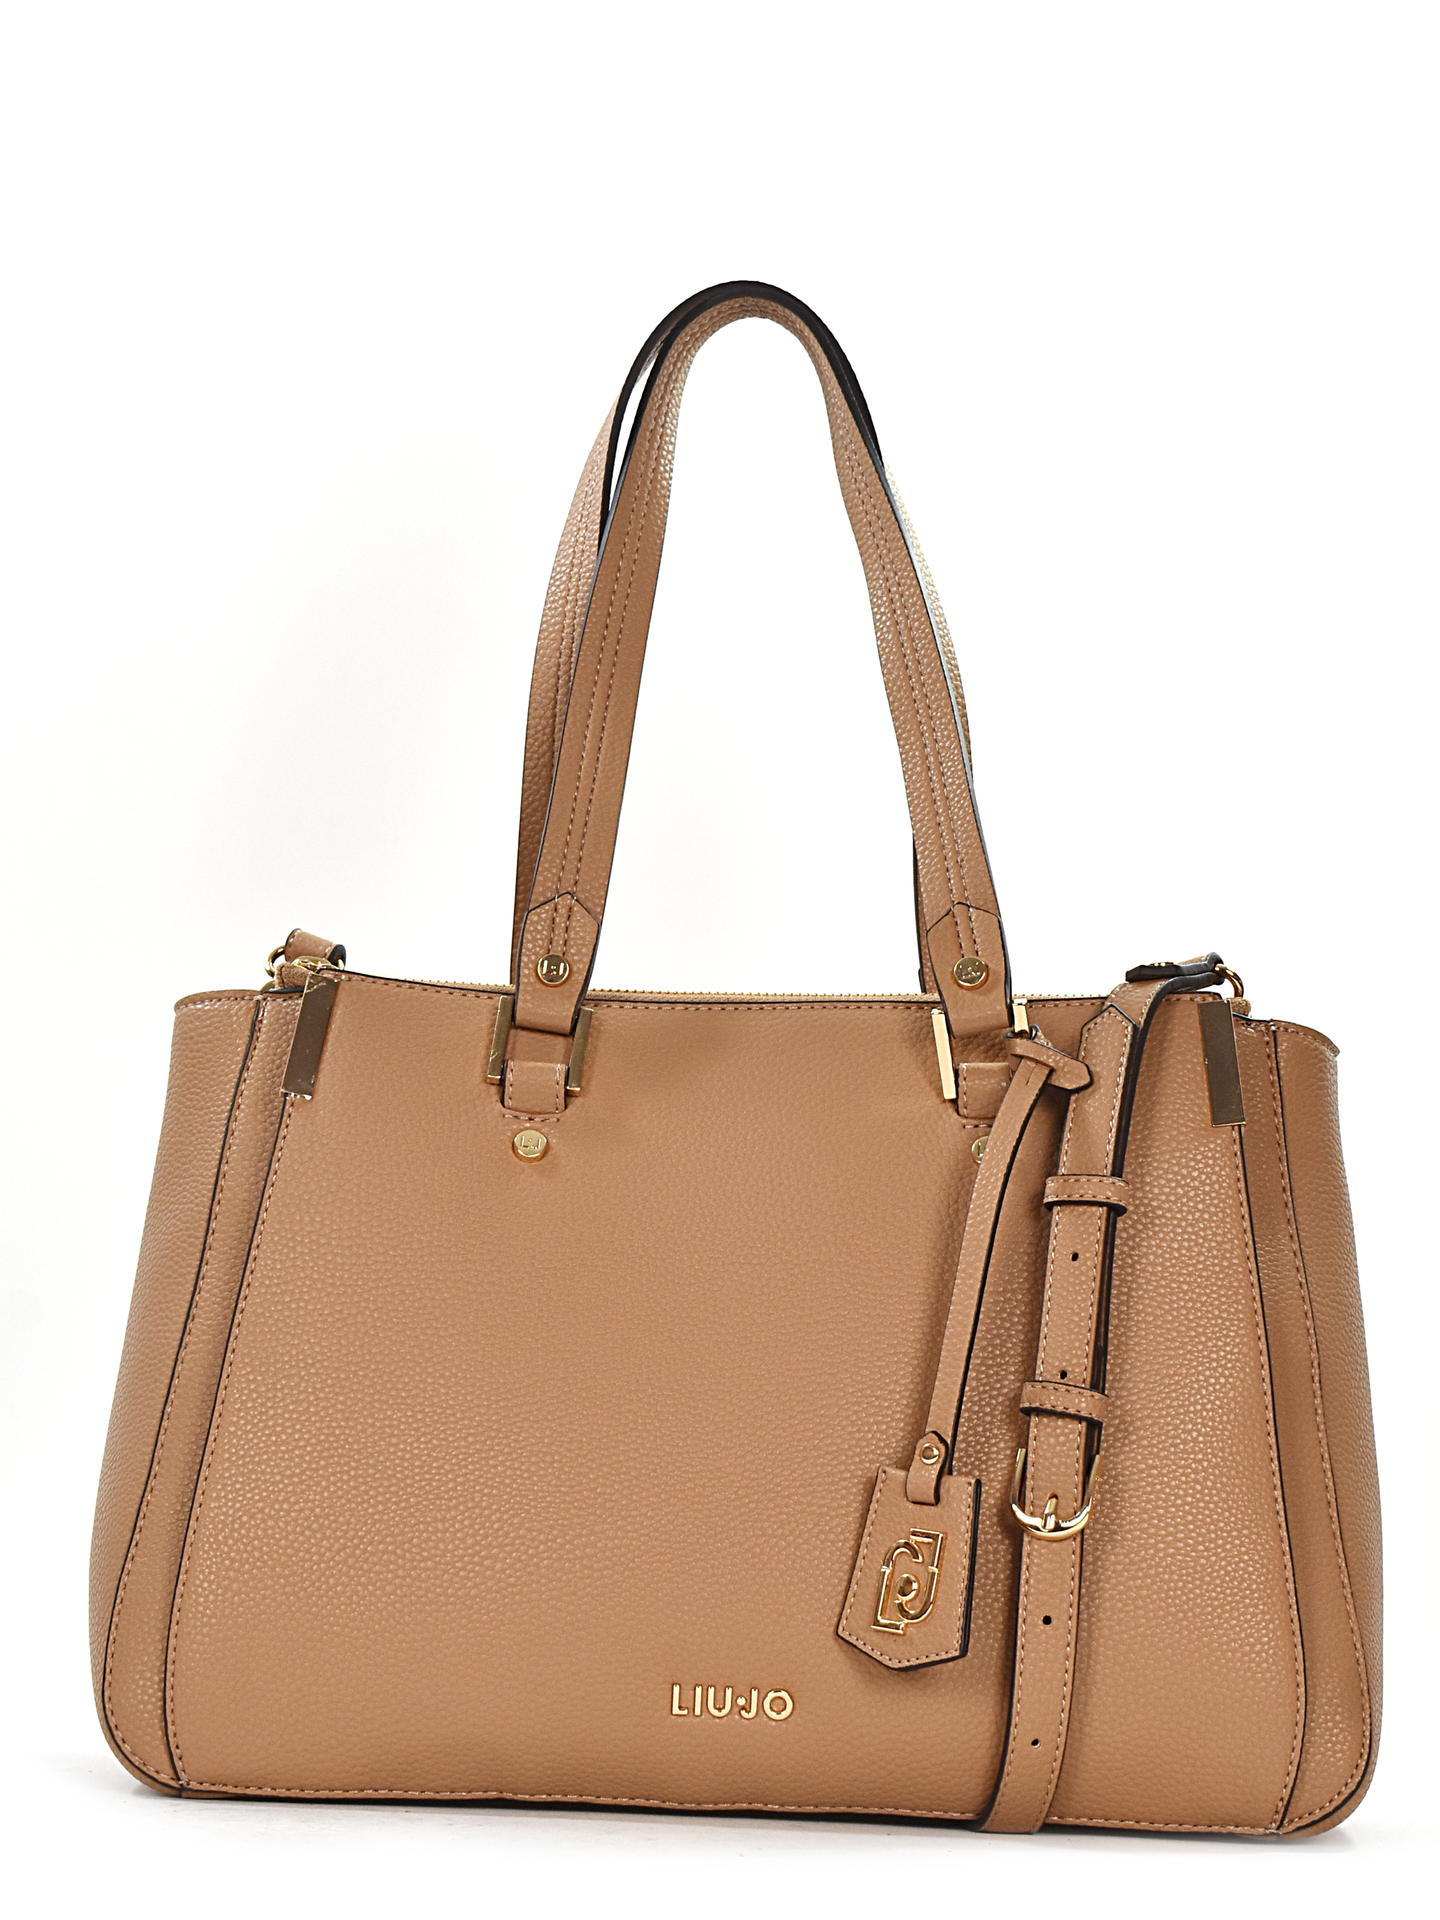 Donna | BORSE | BORSA | DESIDERIO COLLECTION